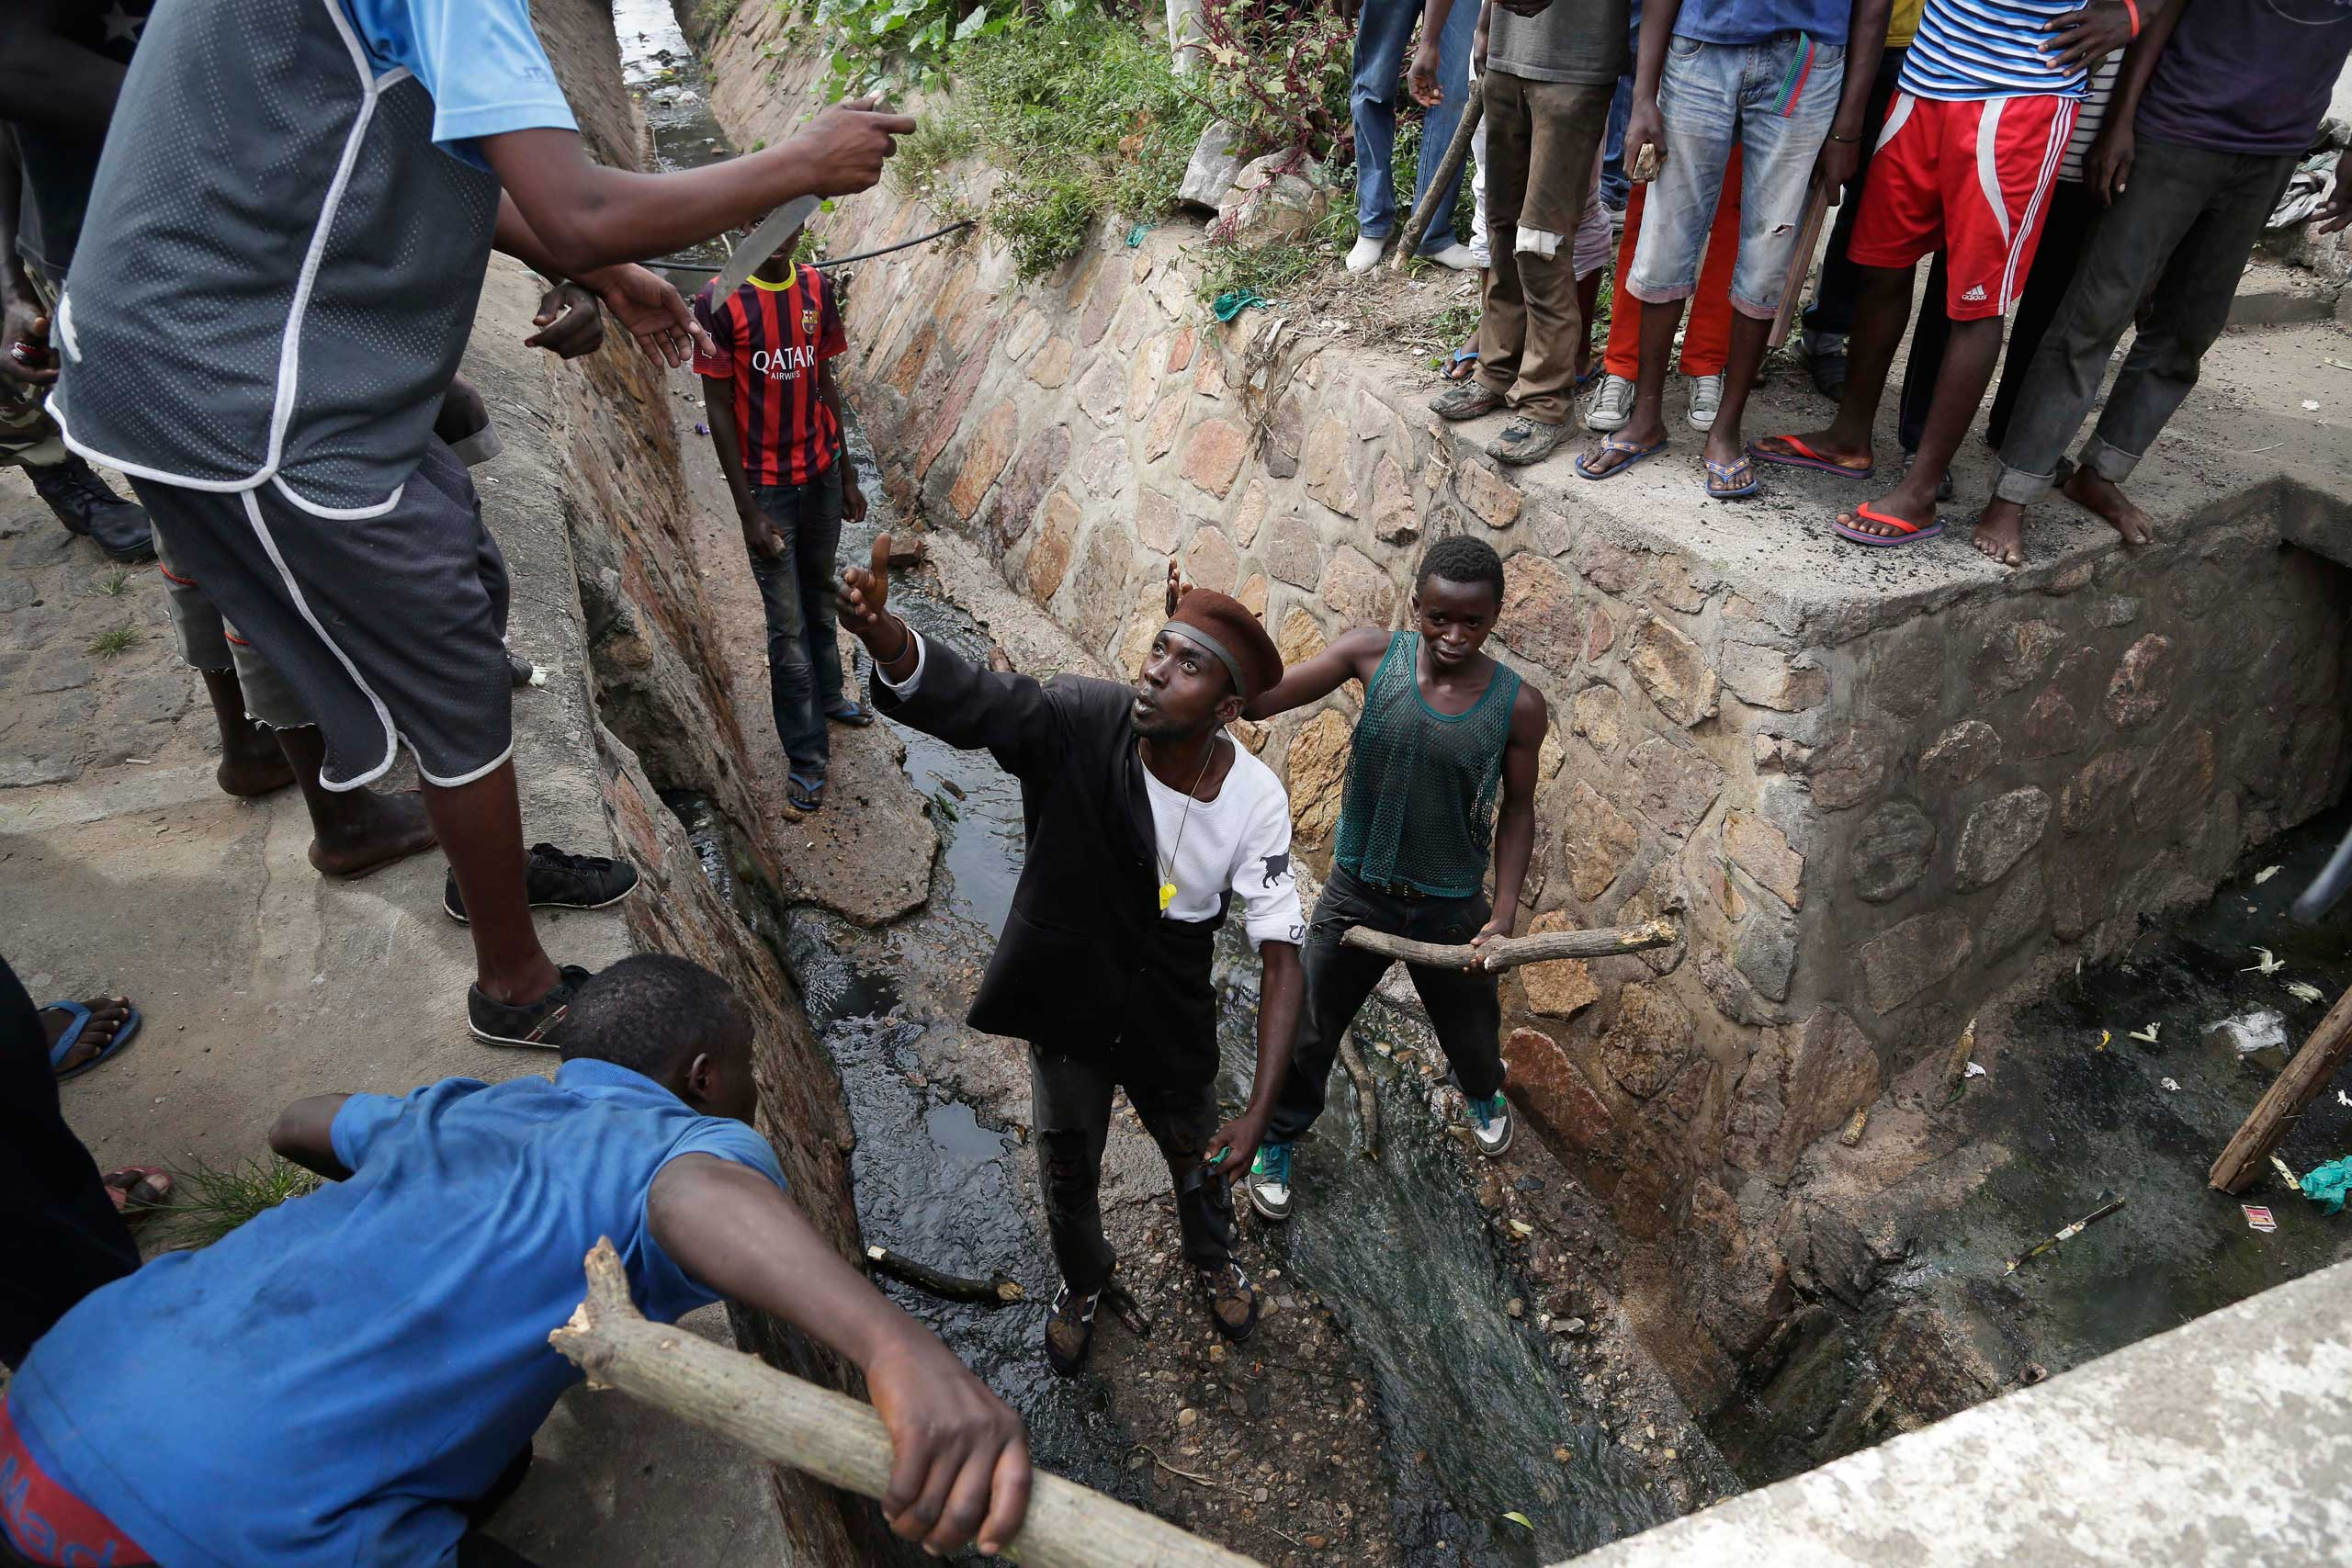 Demonstrators prepare to flush out Niyonzima, who escaped a lynching by running into a sewer.